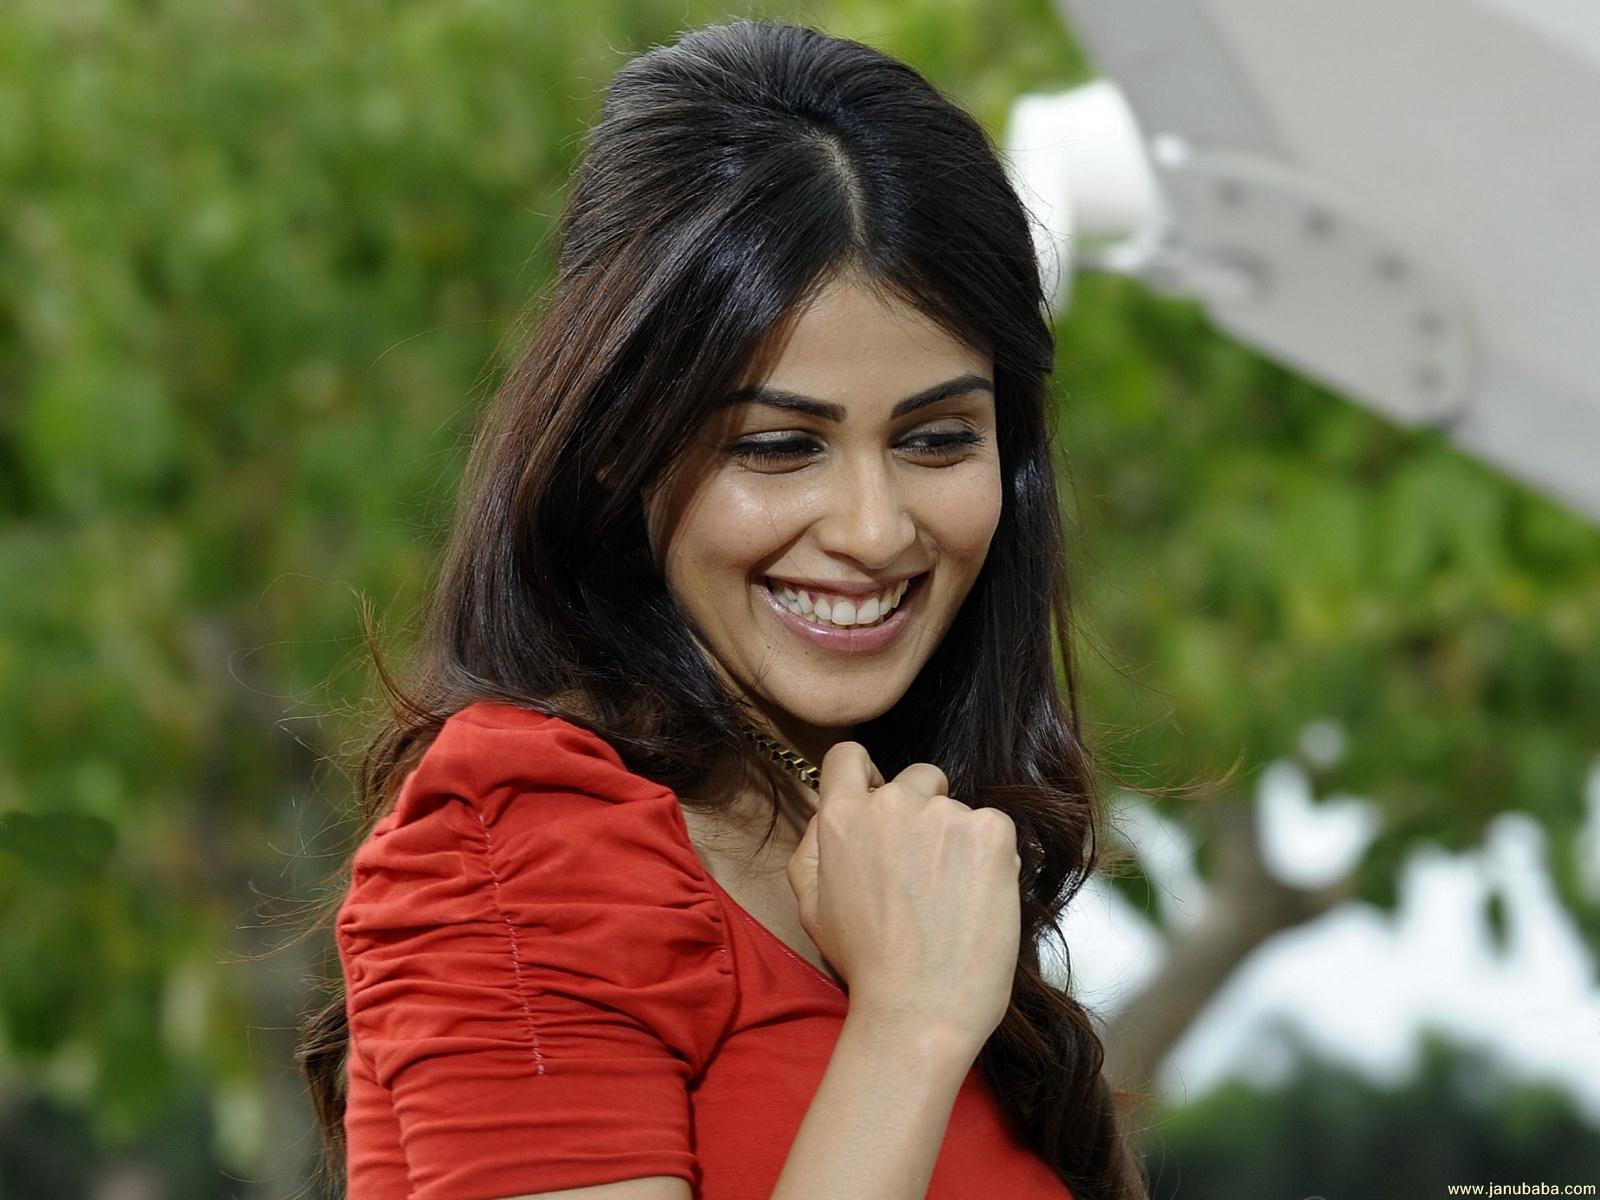 genelia cute wallpapers - sf wallpaper